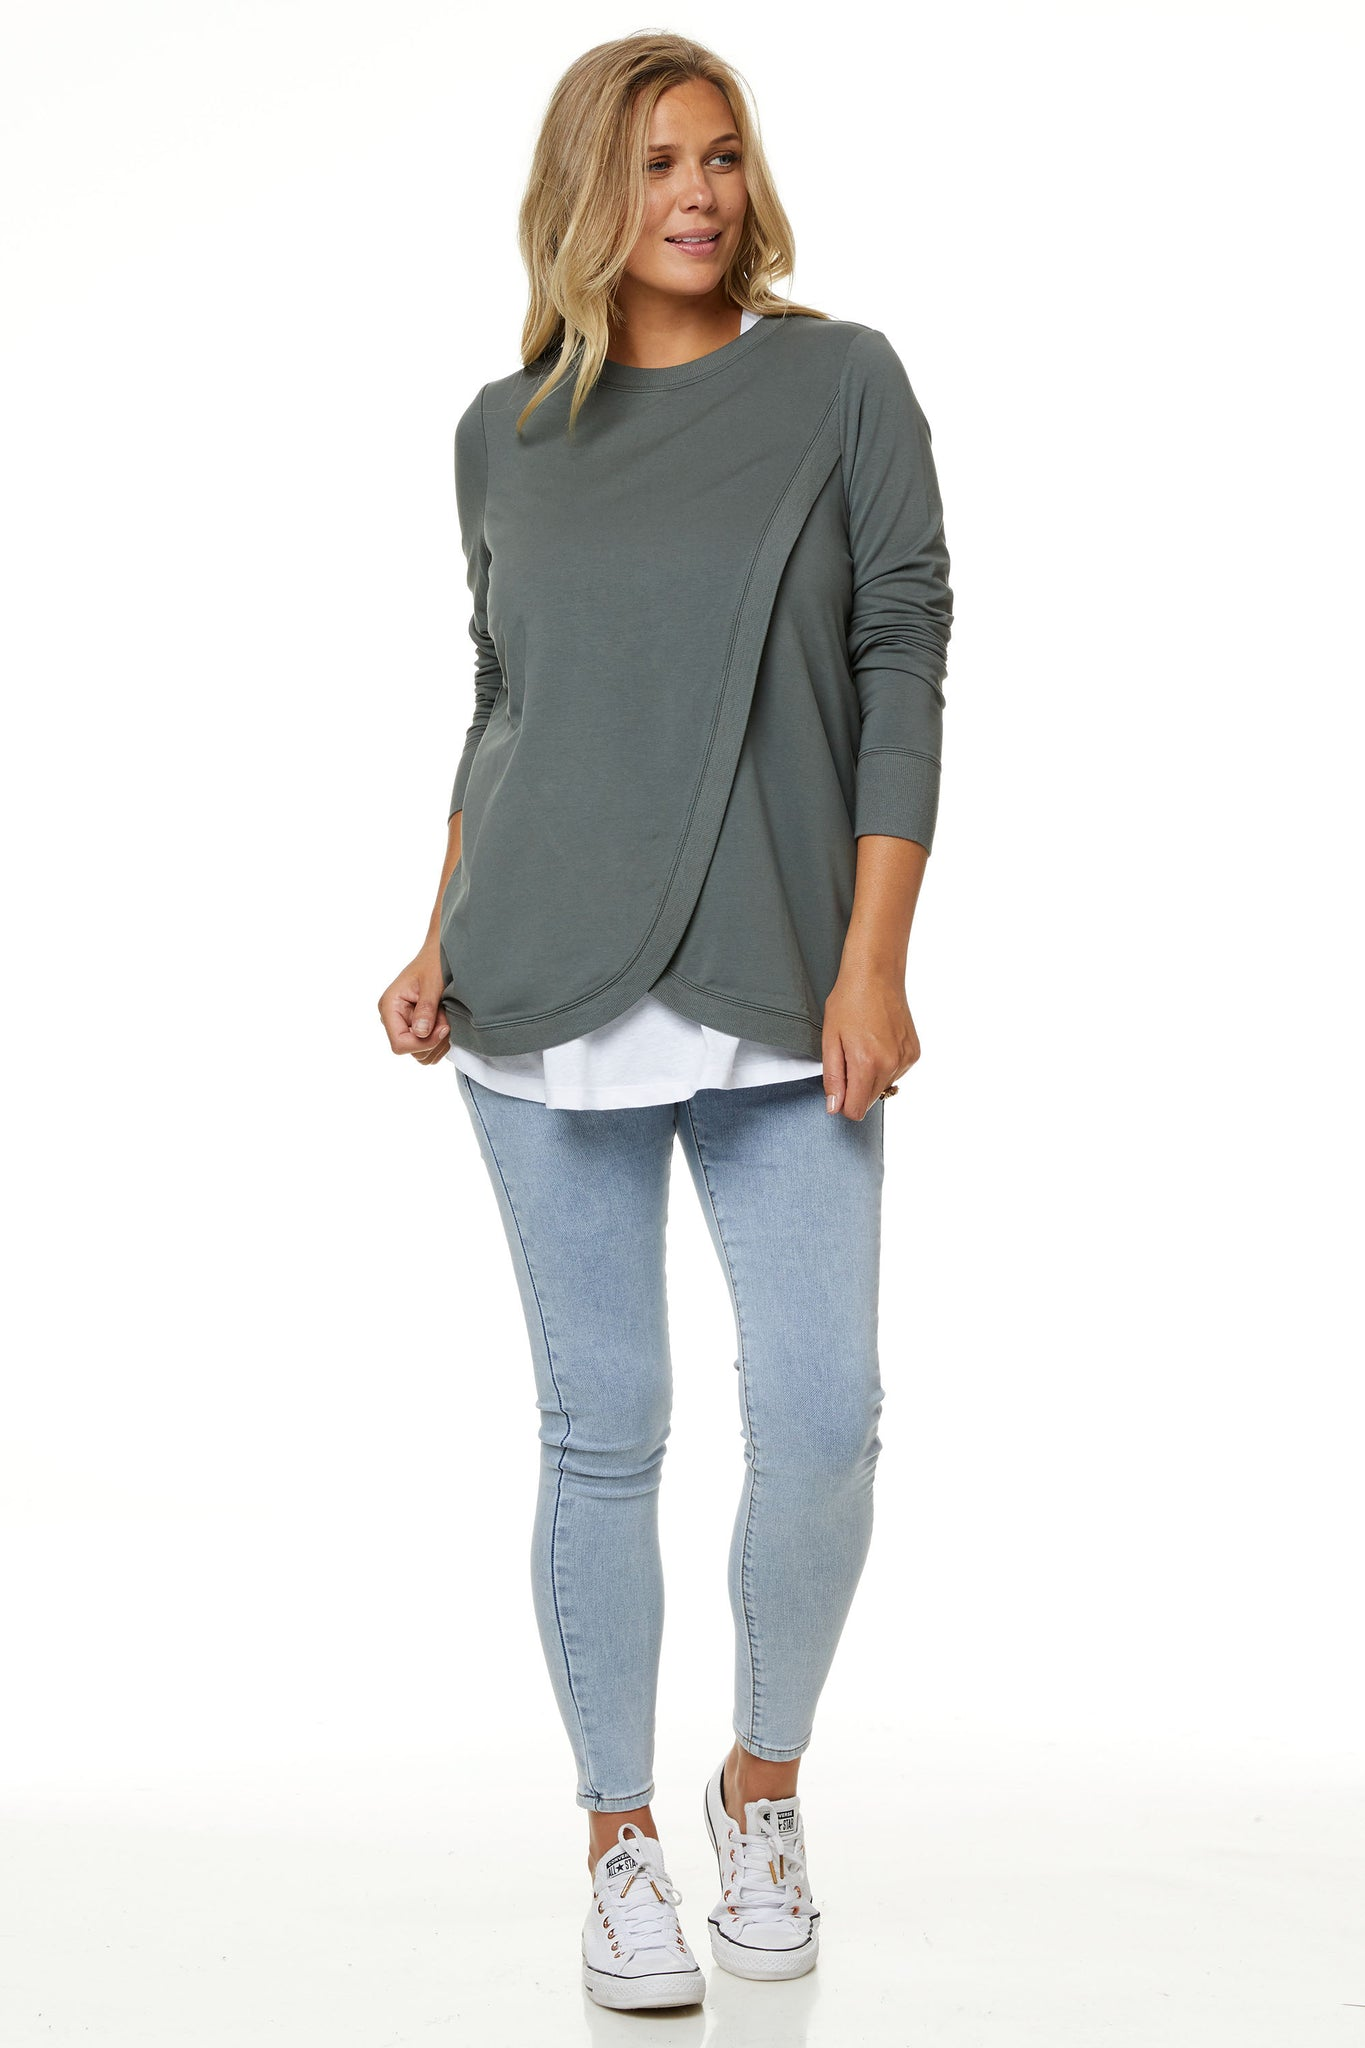 Maternity + Nursing Sweater Top - Khaki 5